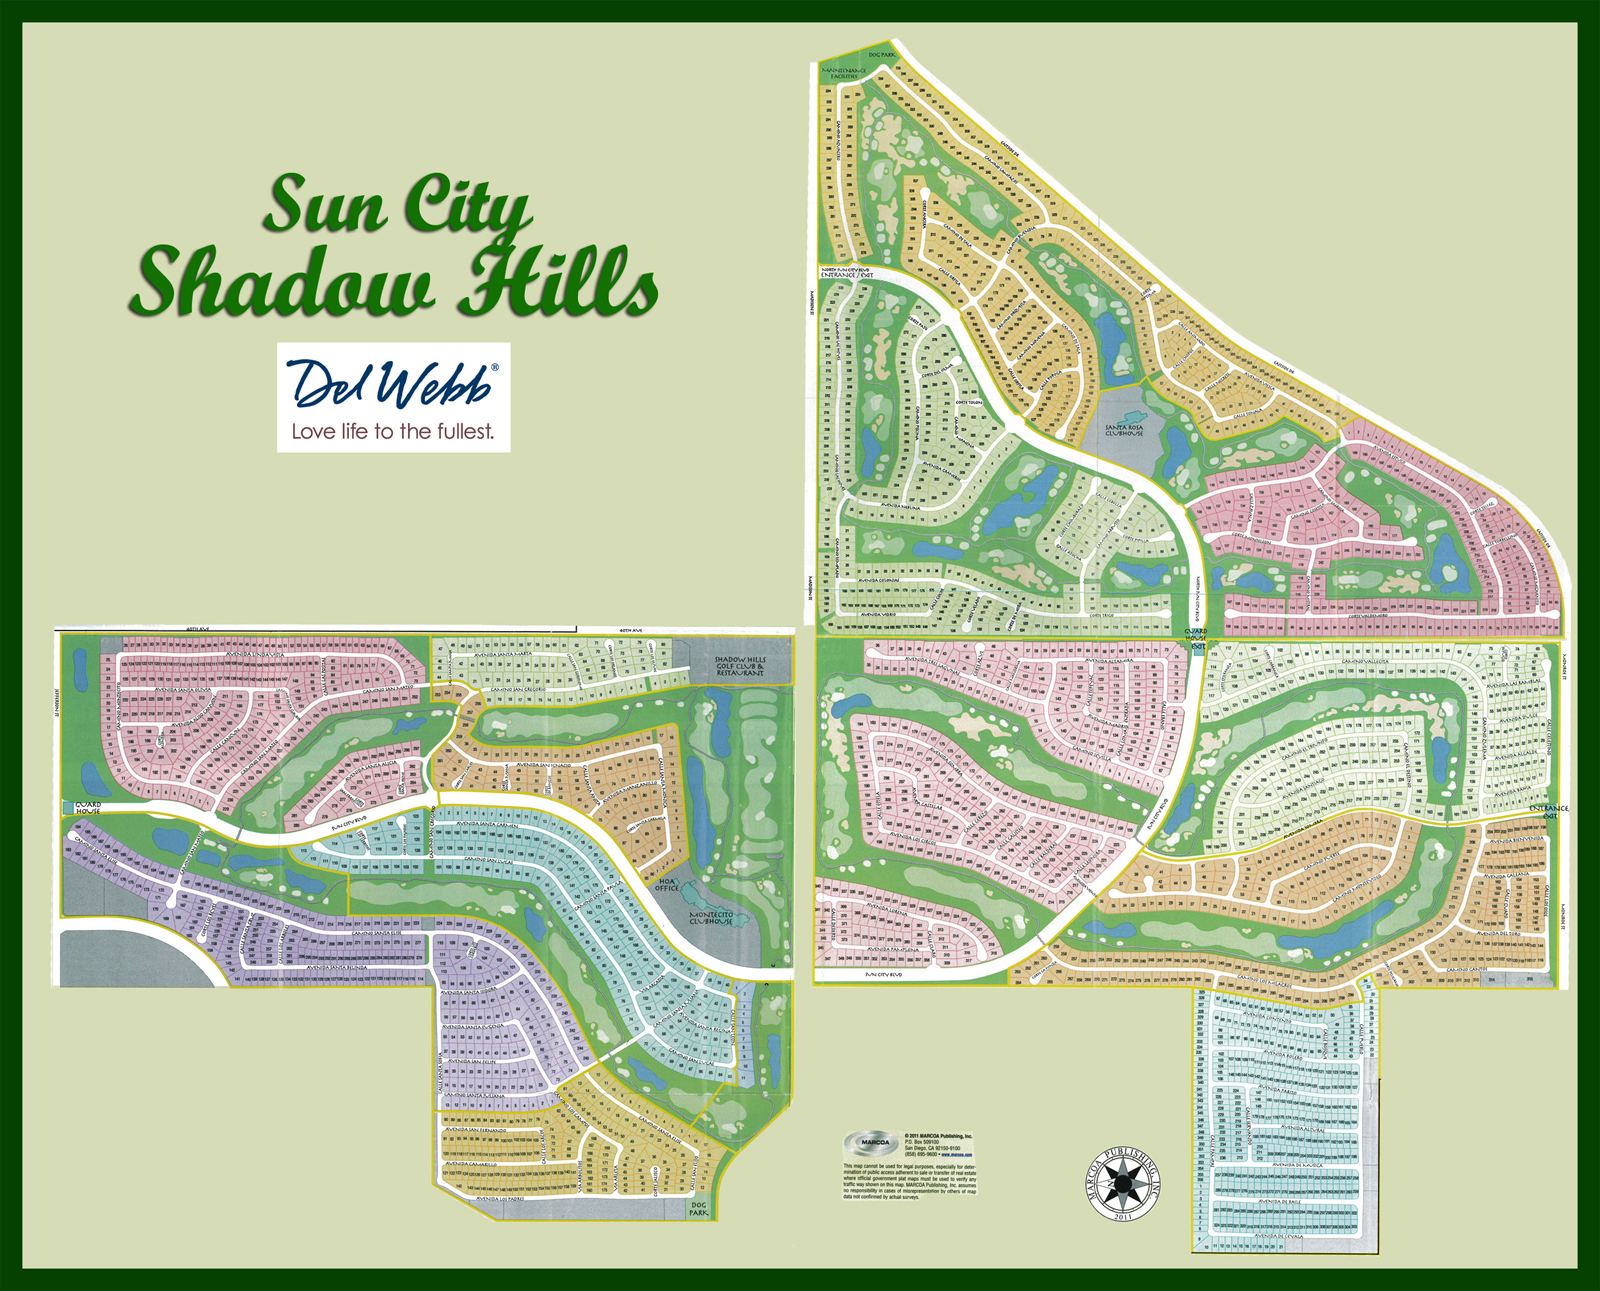 Homes For Sun City Shadow Hills Indio Ca Homemade Ftempo